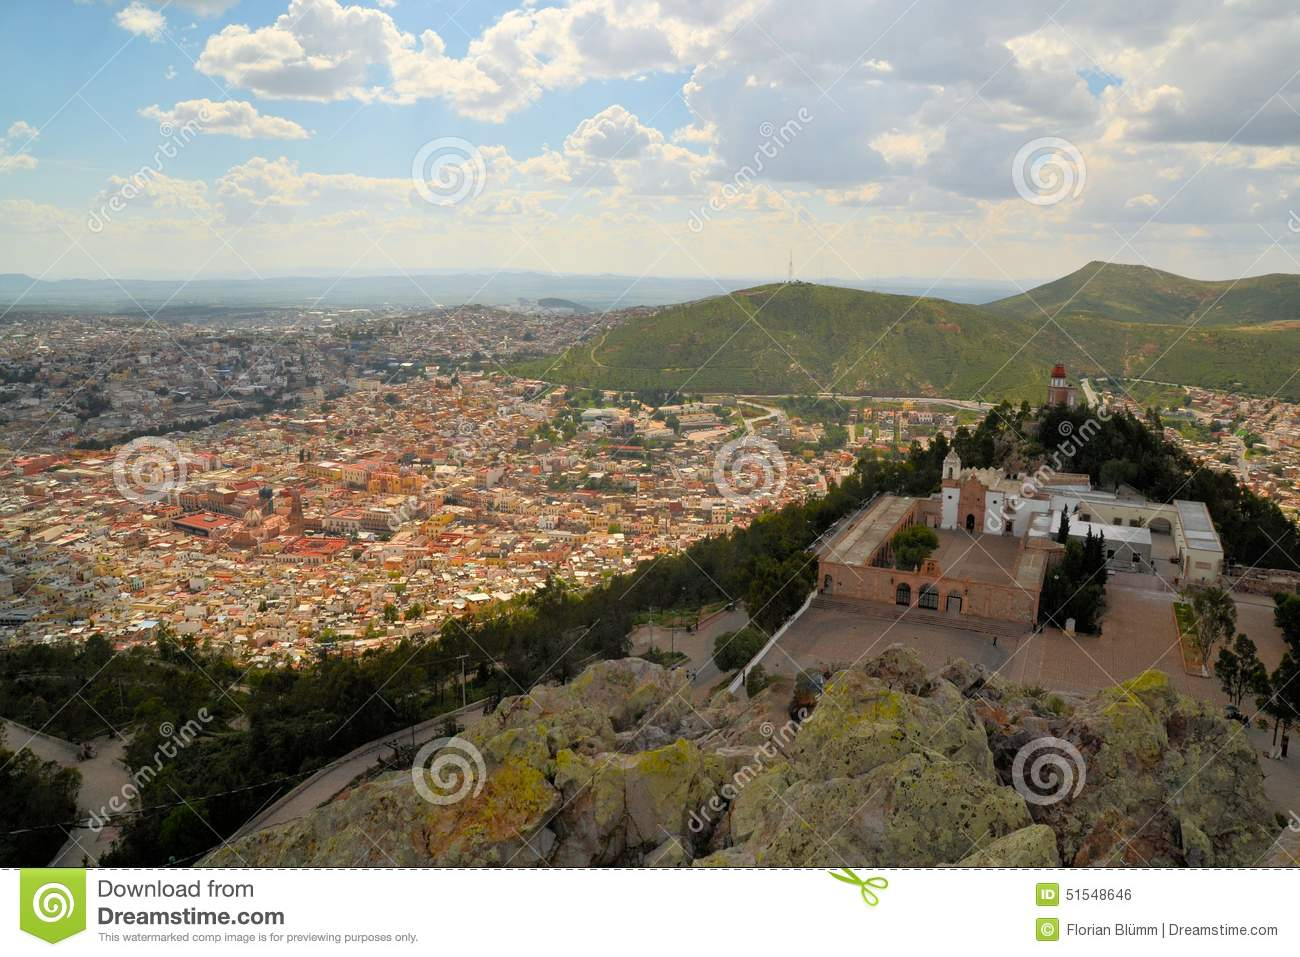 Aerial view of Zacatecas, colorful colonial town